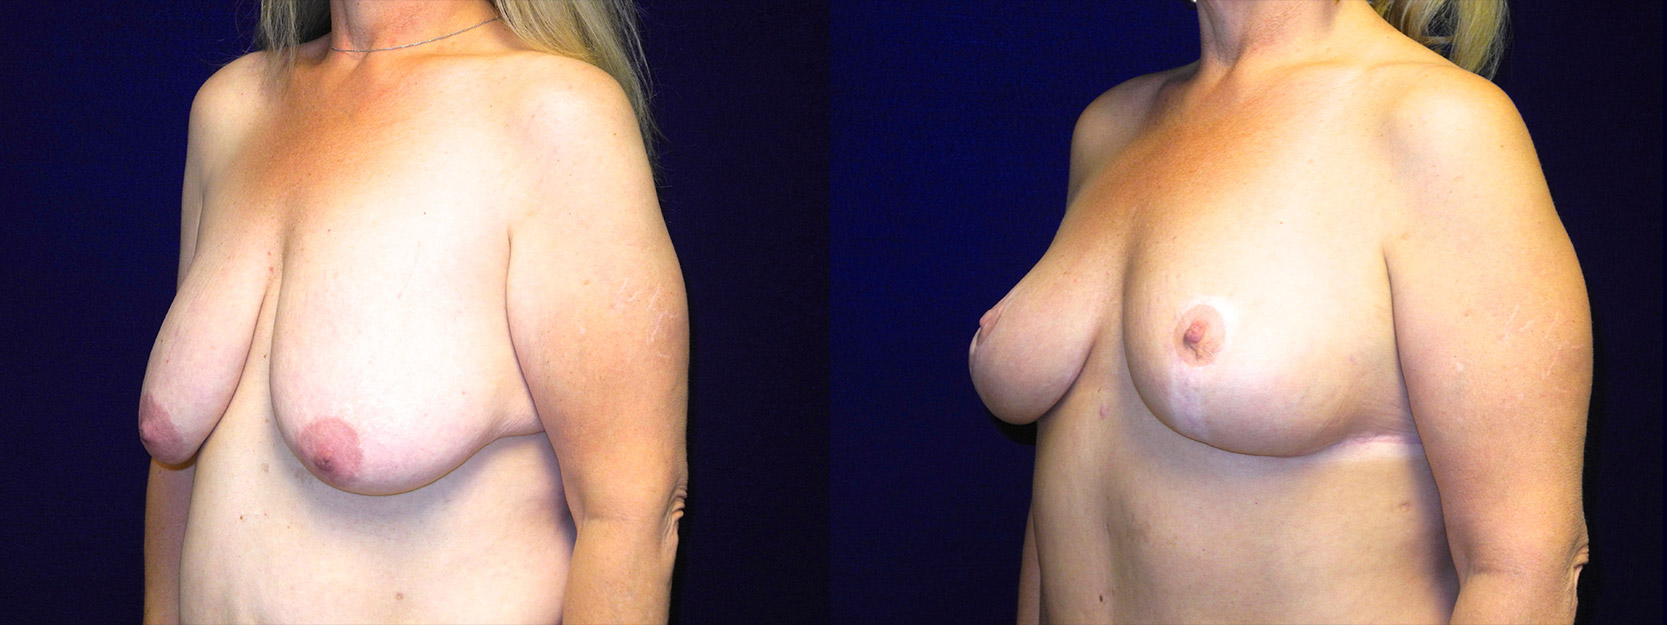 Left 3/4 View - Breast Lift After Massive Weight Loss